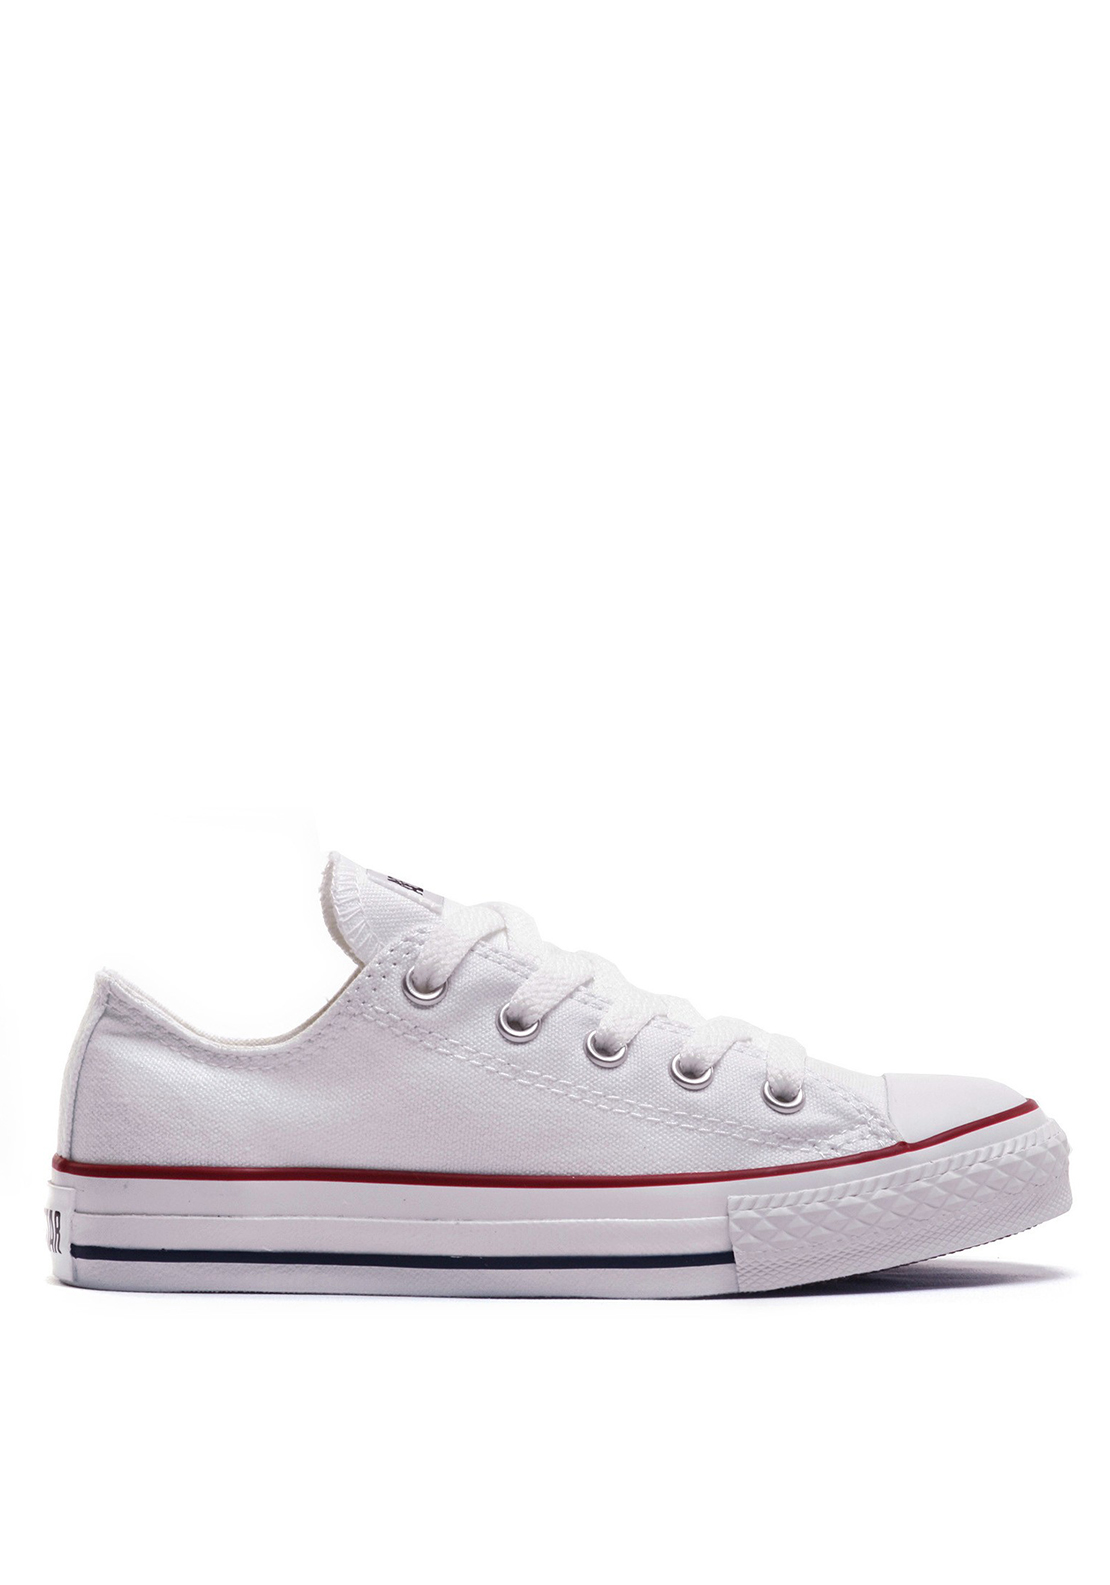 Converse All-Star Ox Low Trainers, White